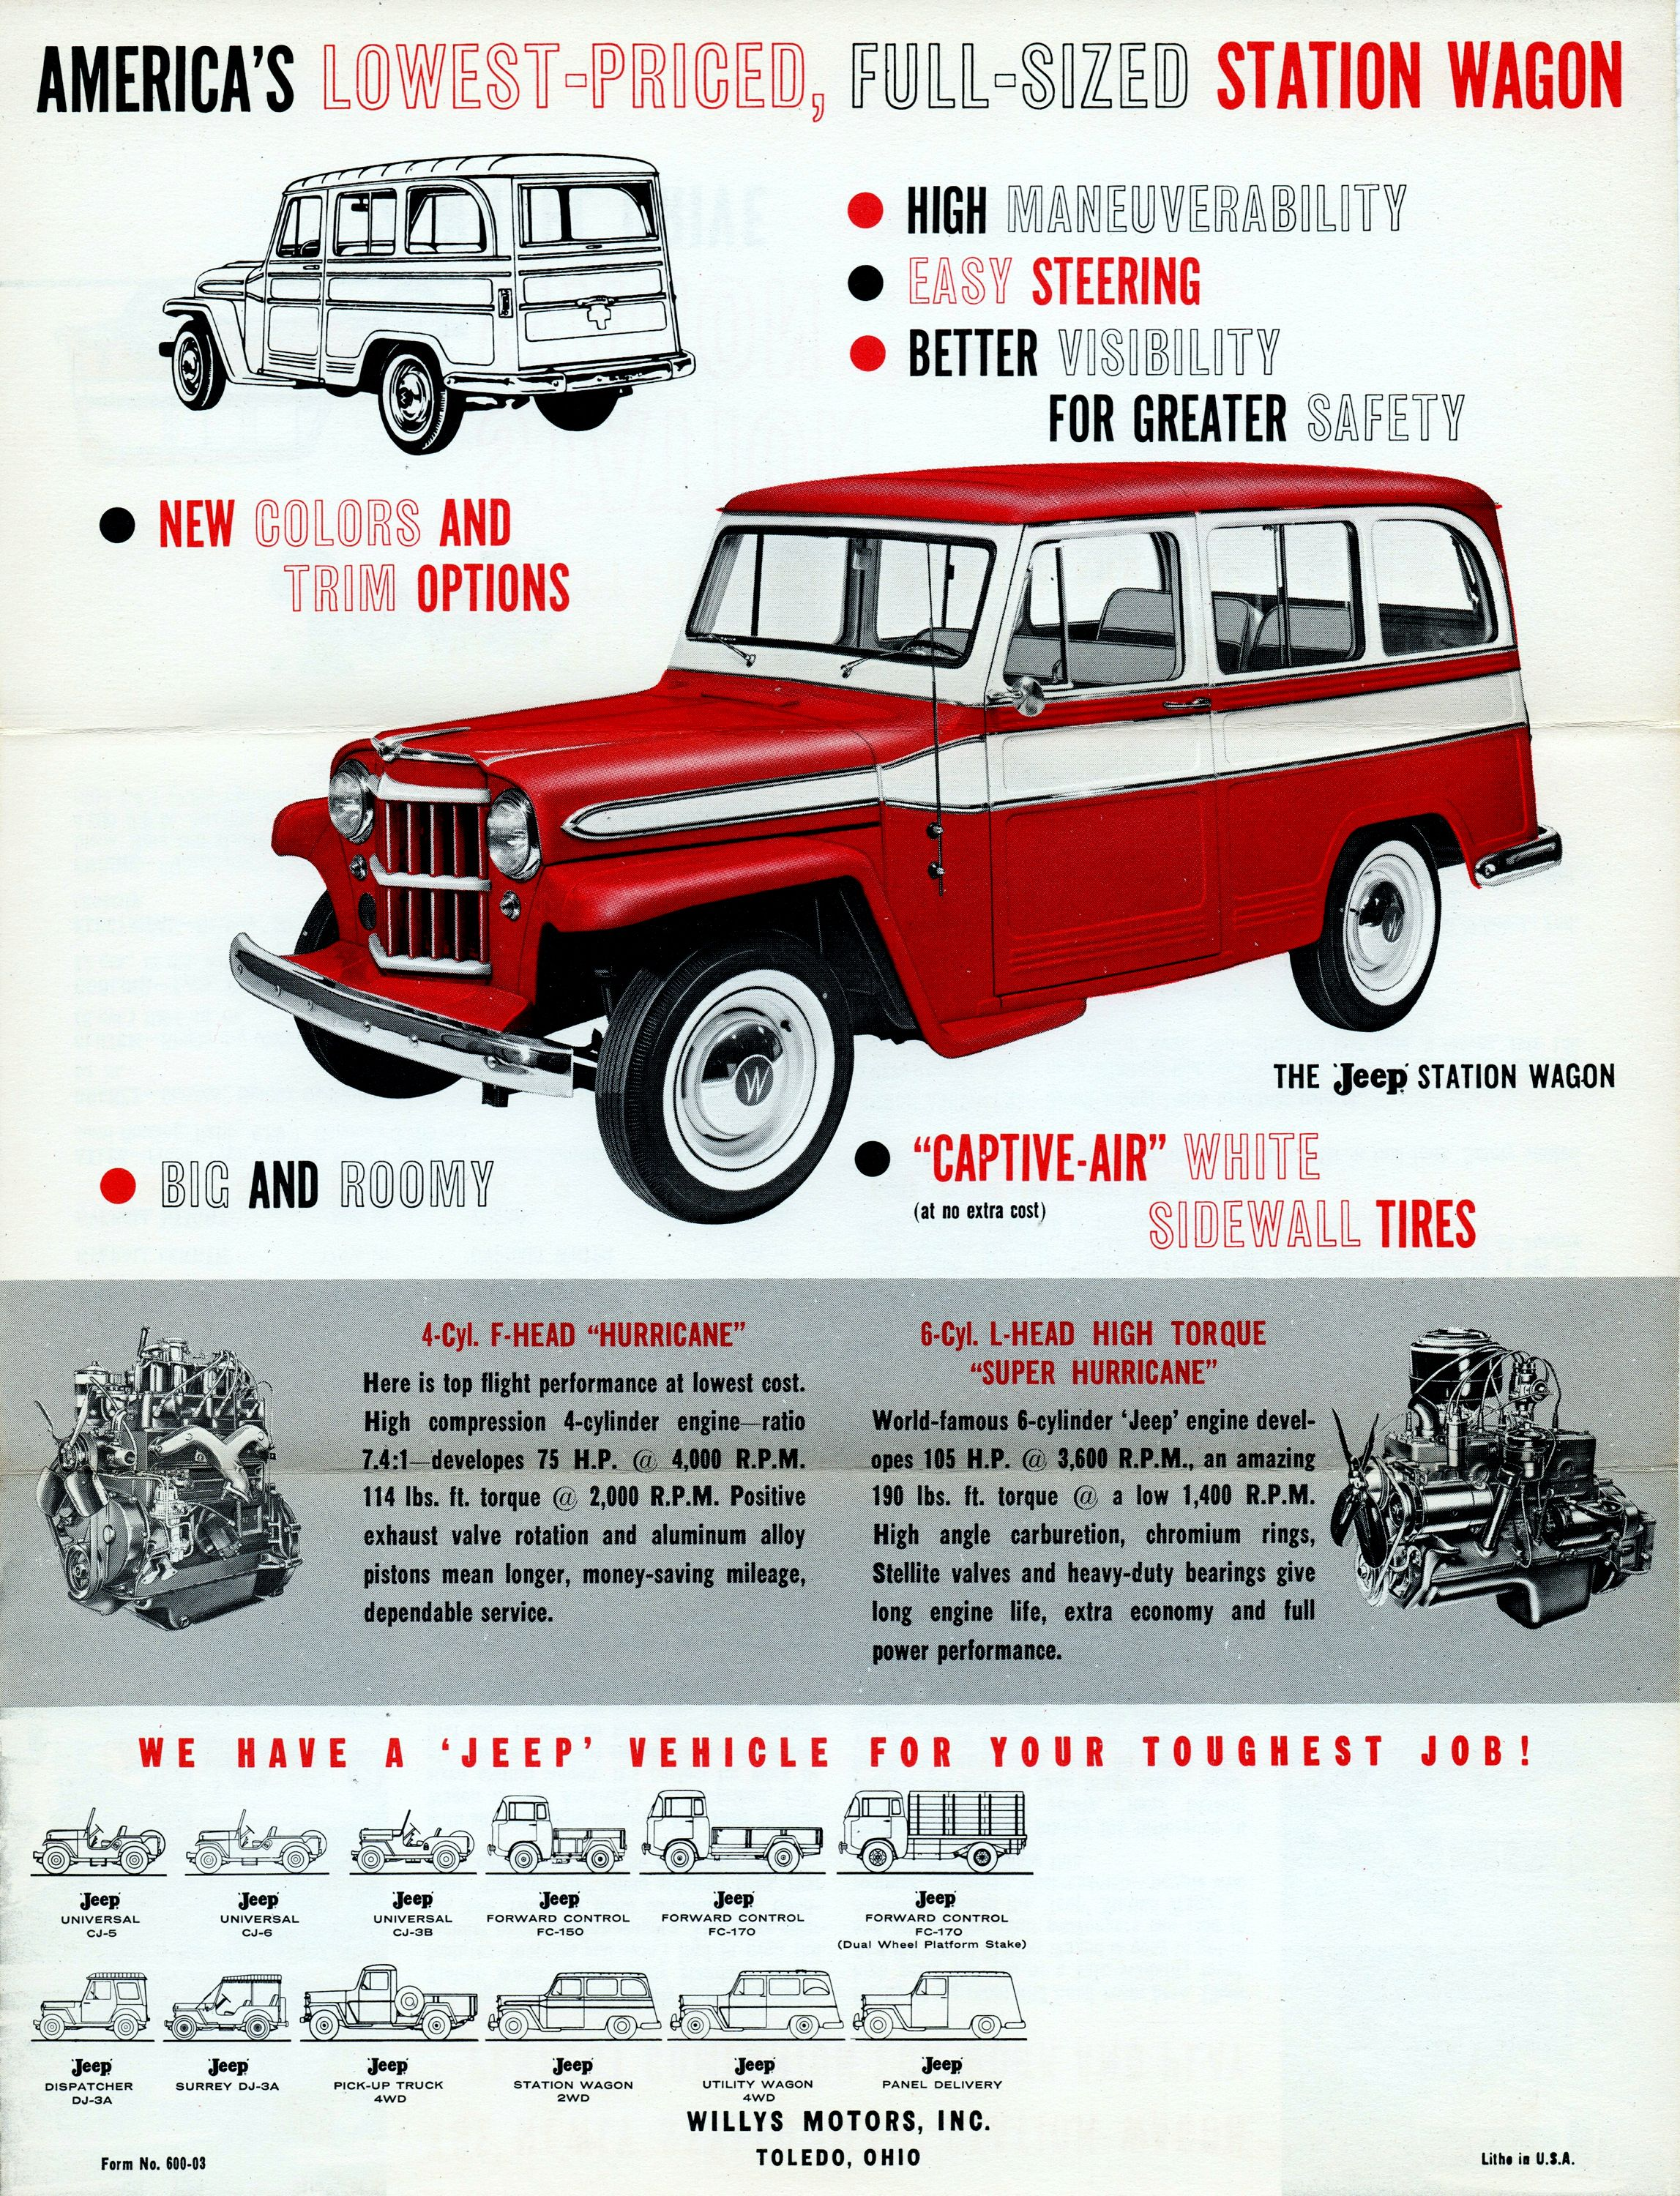 America S Lowest Priced Full Sized Station Wagon The Jeep